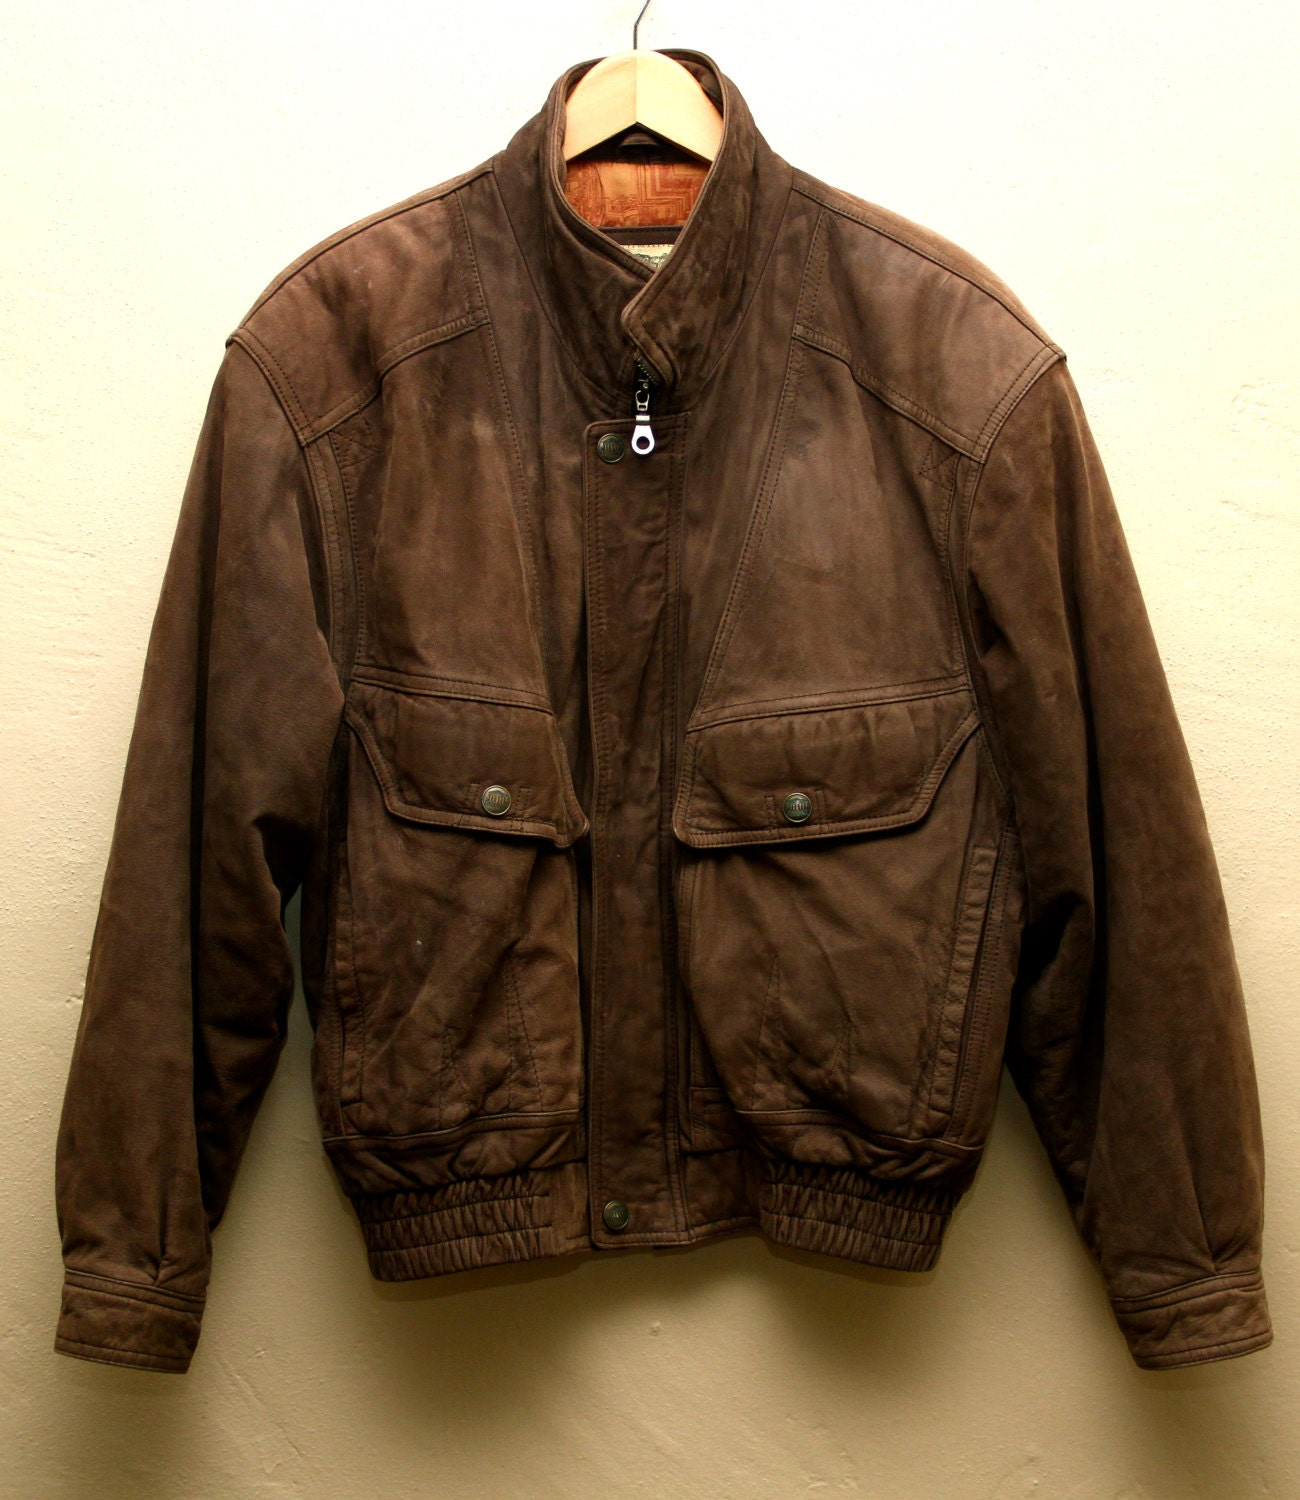 Leather Pilot Jackets: Sort By: The Cockpit Navy G-1 Antique Lamb Leather Jacket (Dark Brown) Made in the USA! Favored by bomber crews during WWll, the B-3 was brought into service around Made with % vintage lambskin and created with military styling.